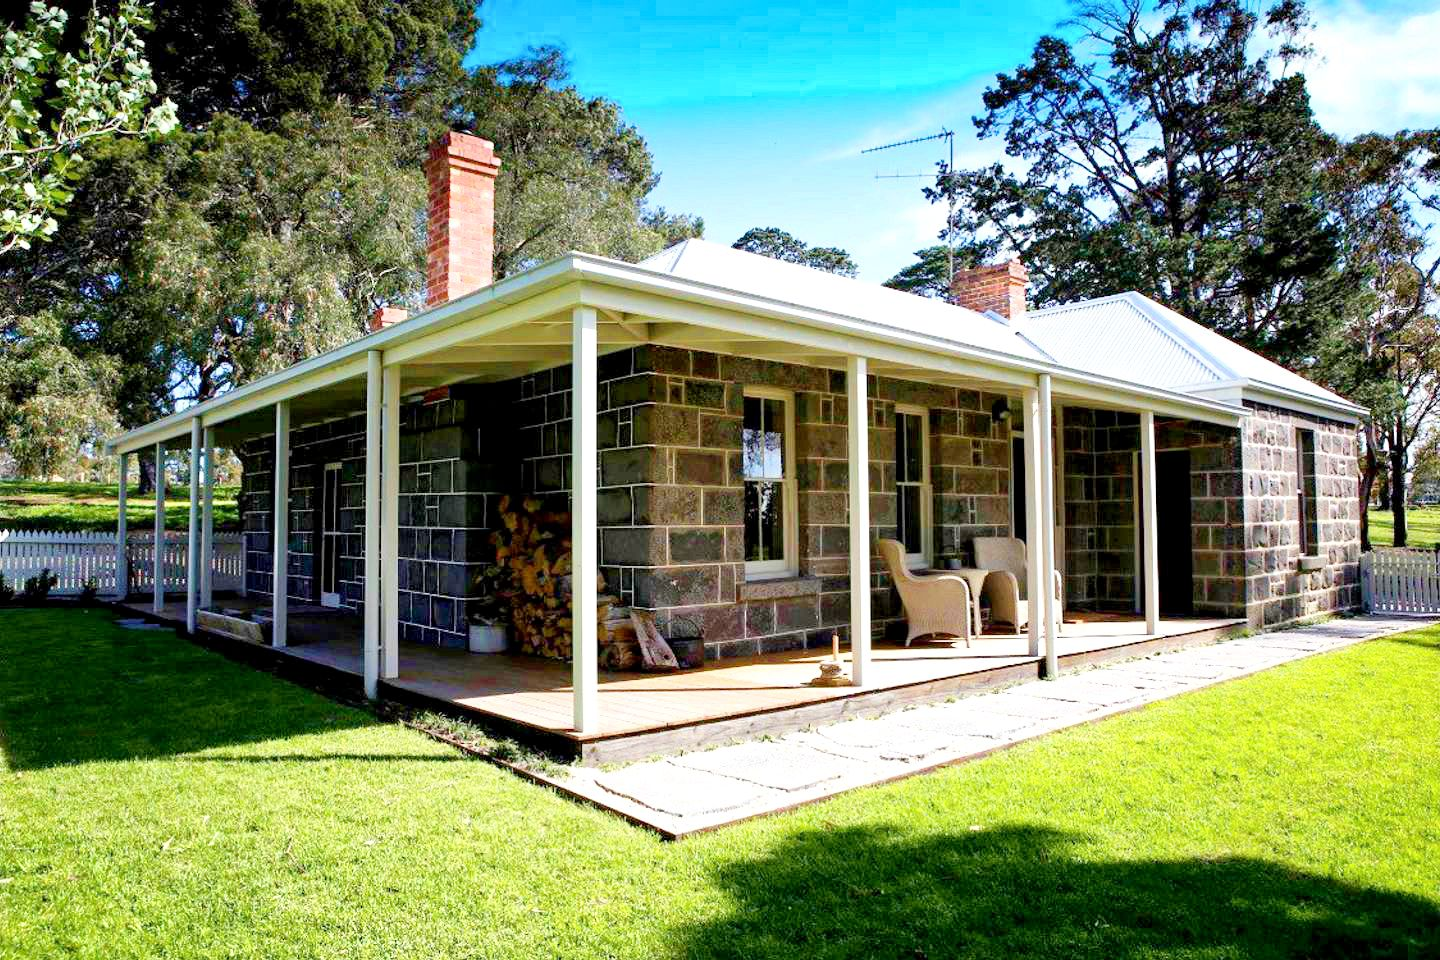 Cottages (Hesse, Victoria, Australia)